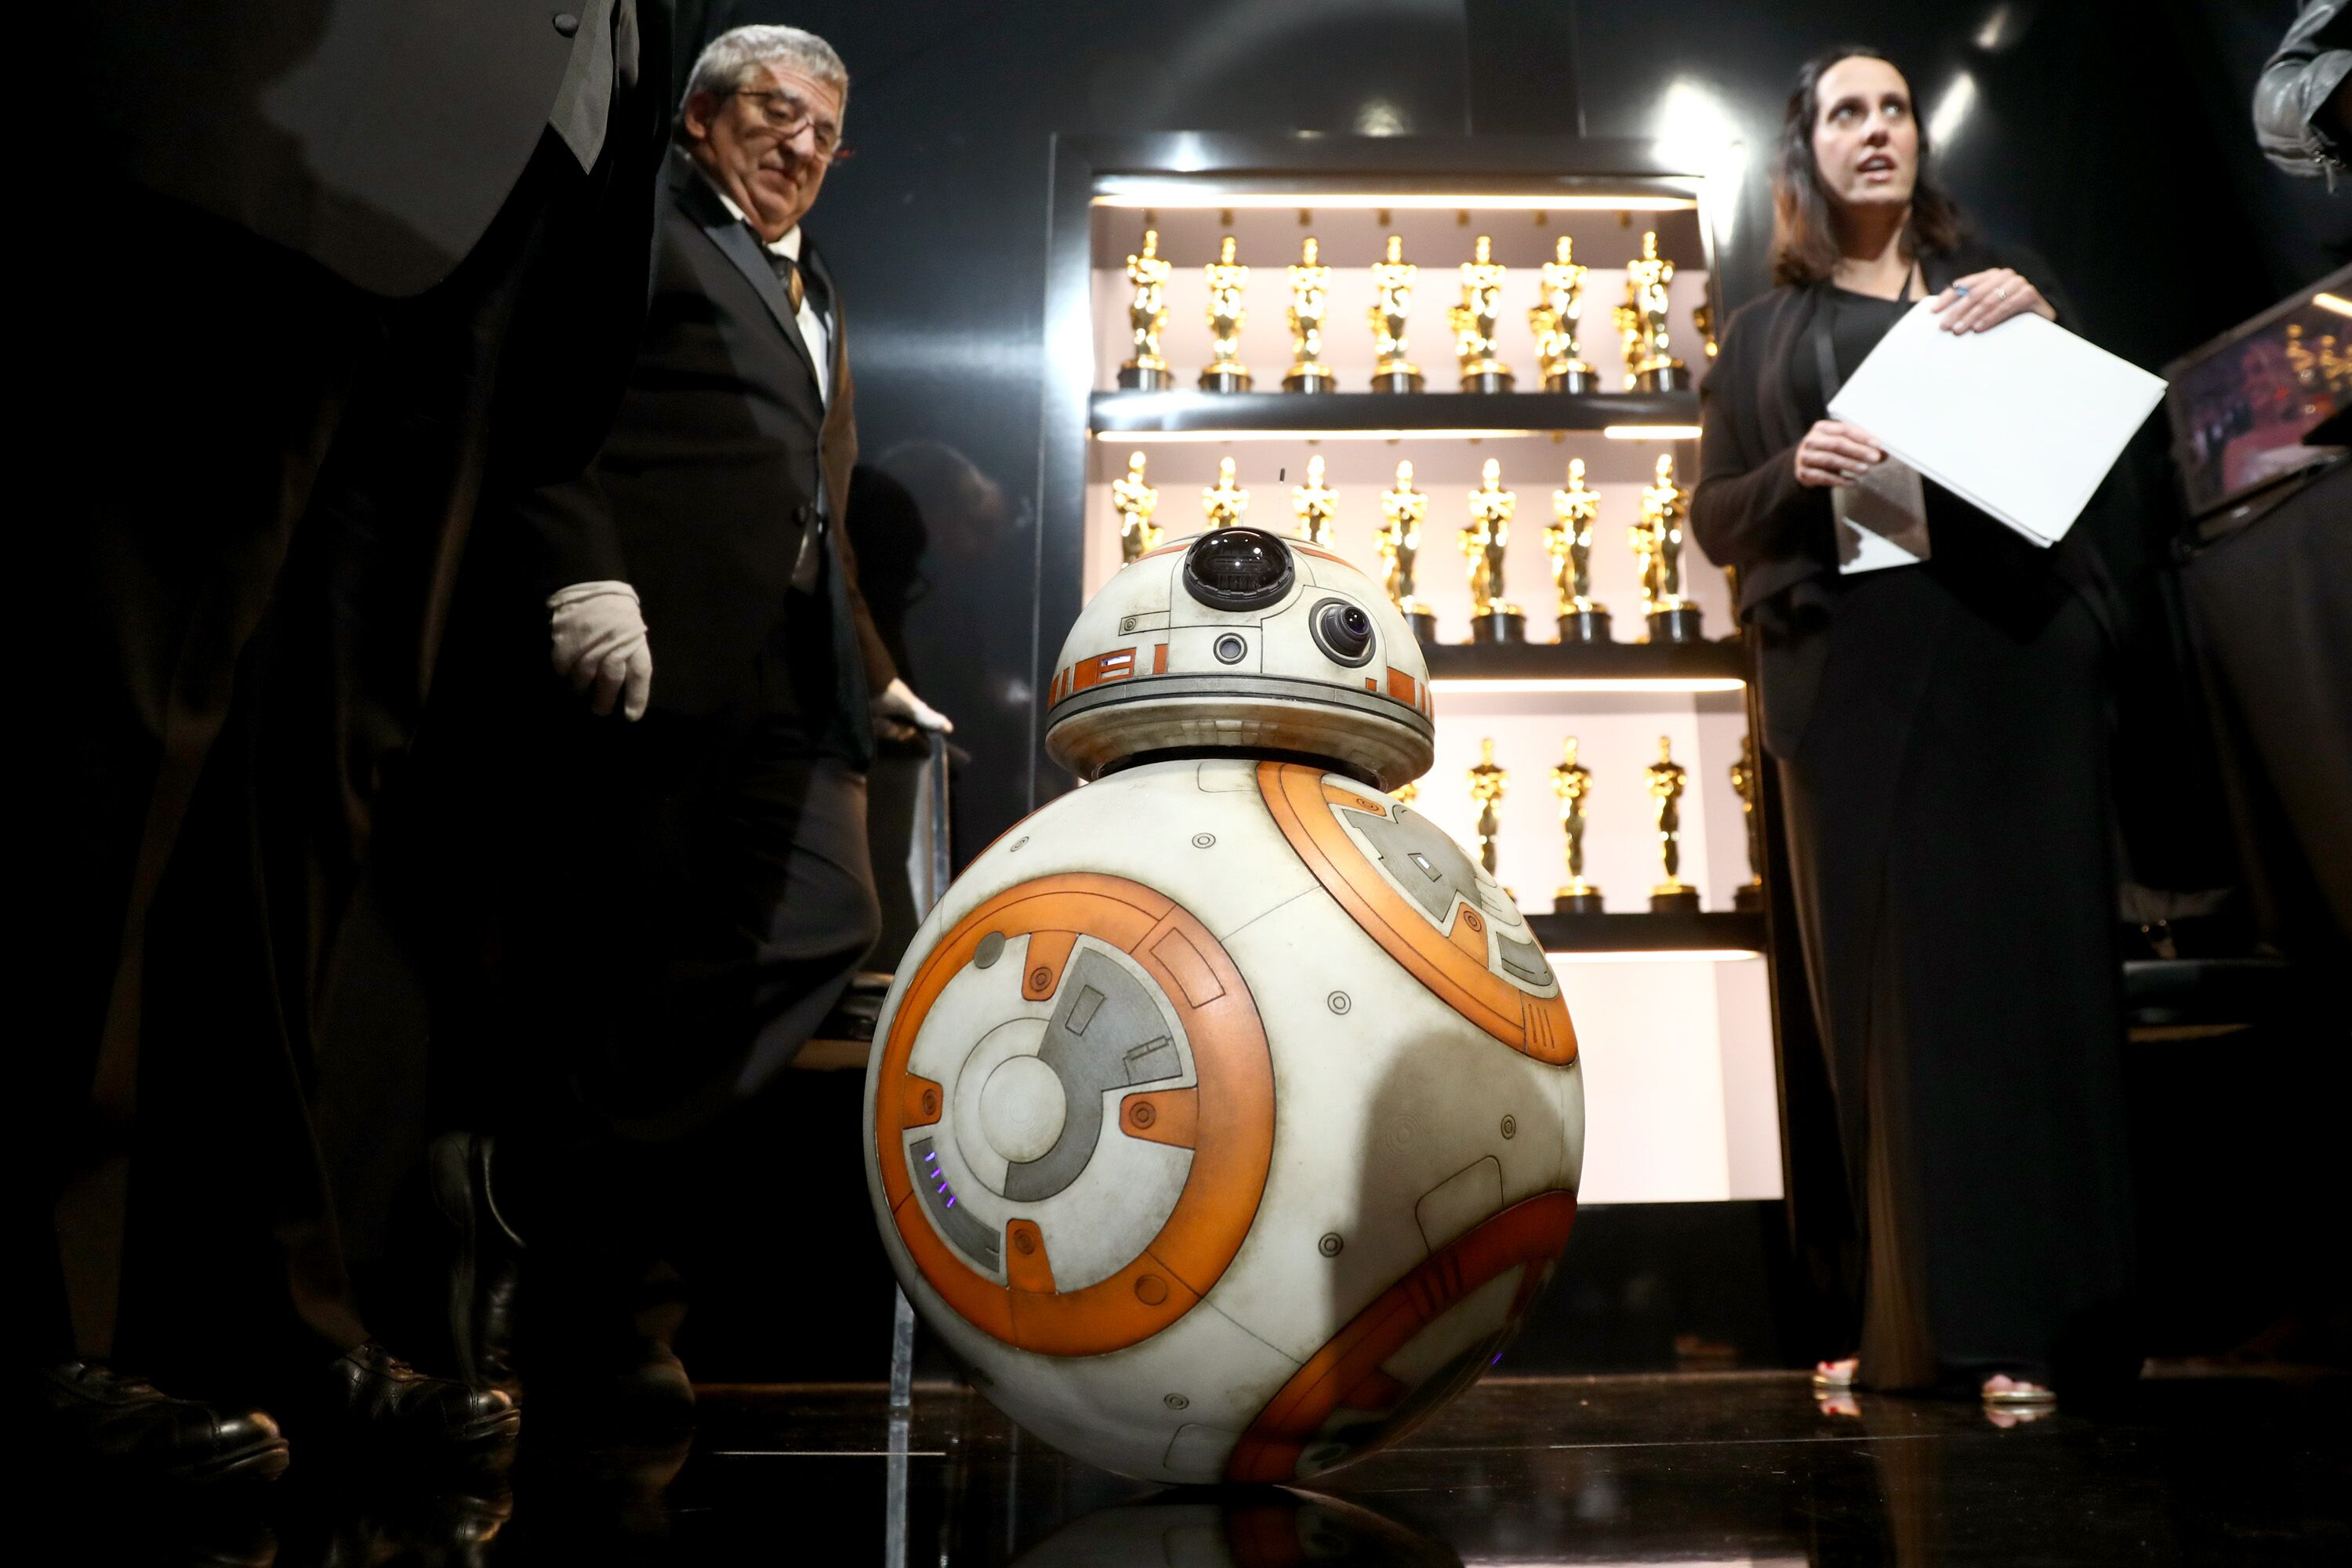 BB-8 puppeteer confirms he's finished filming Star Wars Episode IX